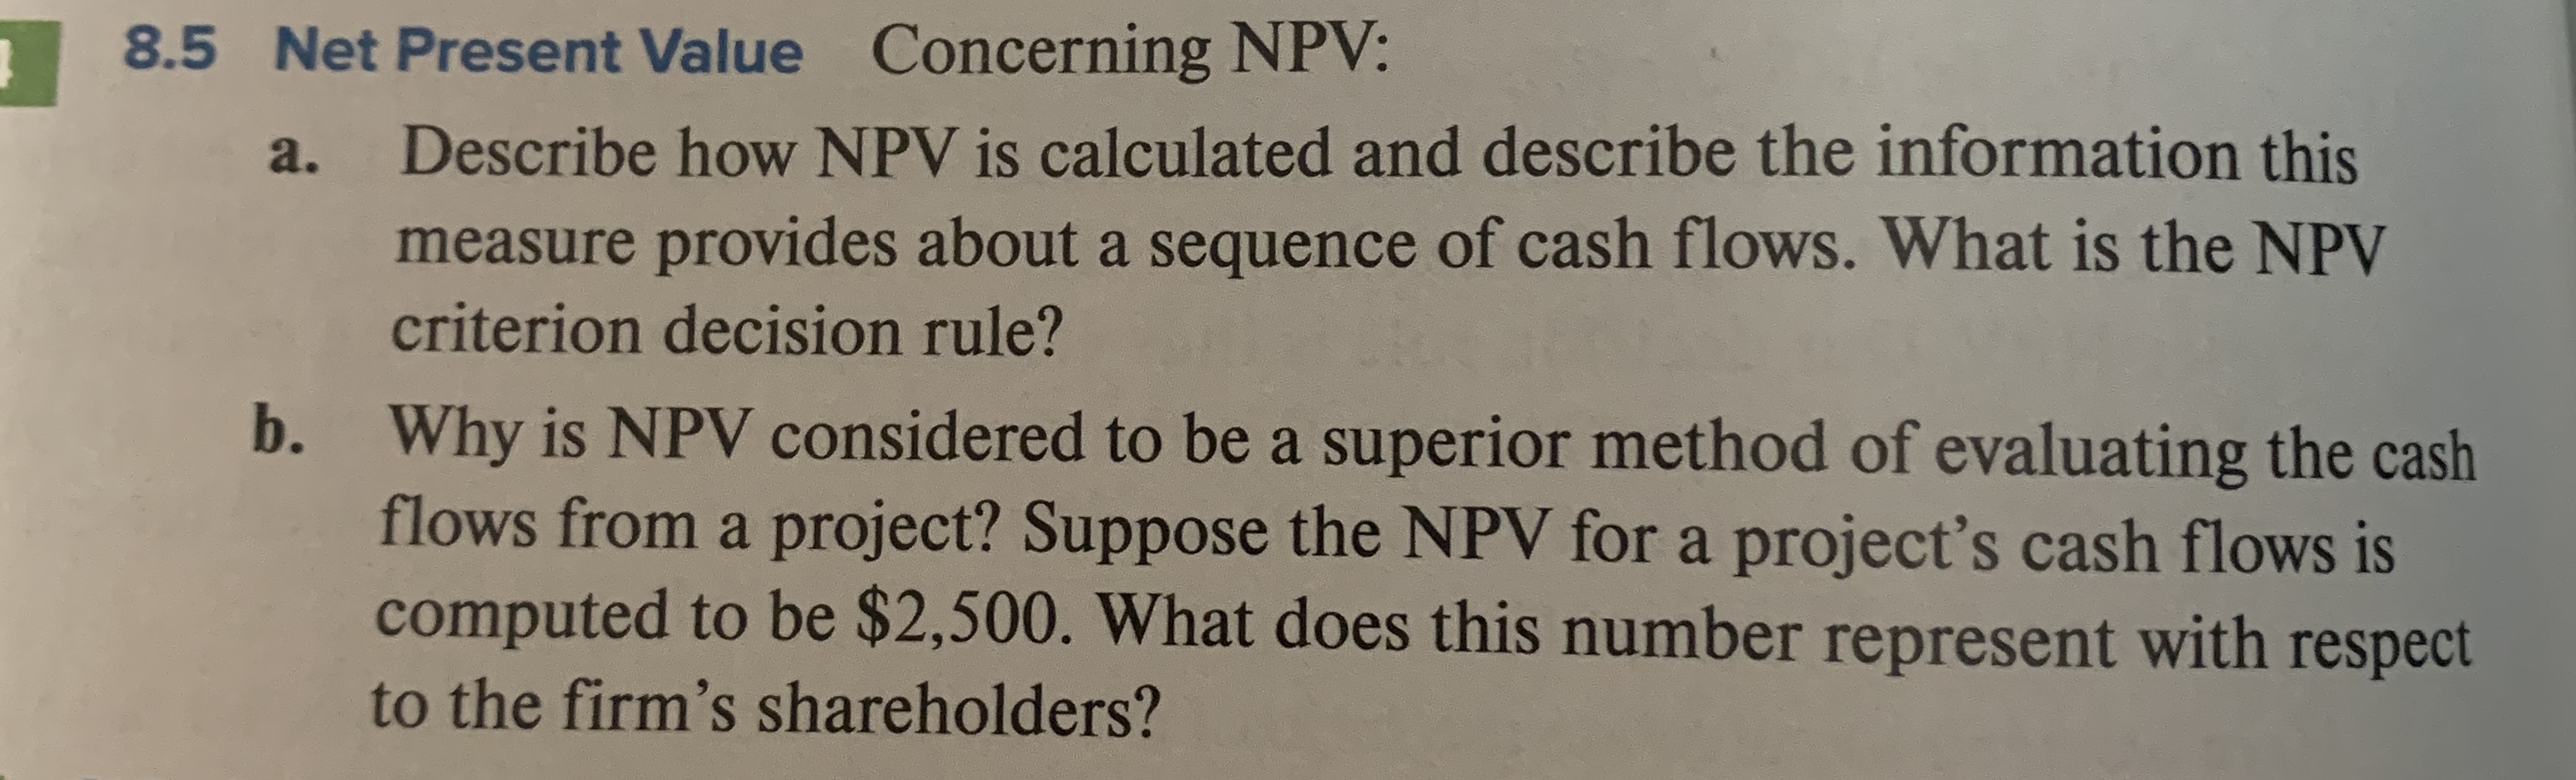 Concerning NPV: 8.5 Net Present Value Describe how NPV is calculated and describe the information this a. measure provides about a sequence of cash flows. What is the NPV criterion decision rule? Why is NPV considered to be a superior method of evaluating the cash flows from a project? Suppose the NPV fora project's cash flows is computed to be $2,500. What does this number represent with respect b. to the firm's shareholders?